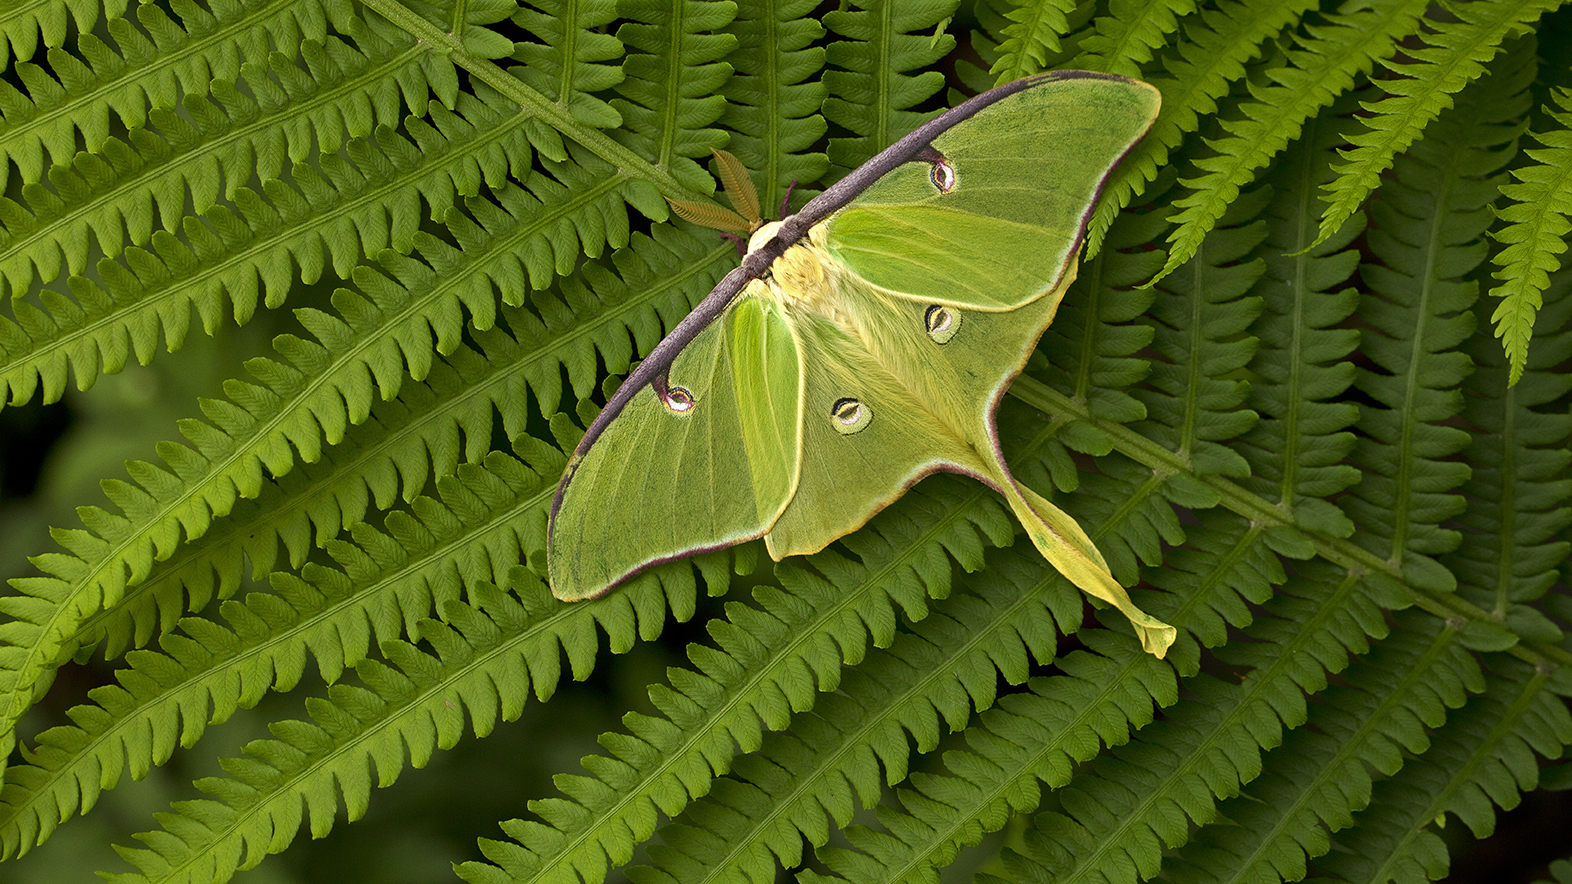 dramatic green colors of a moth sitting on a fern